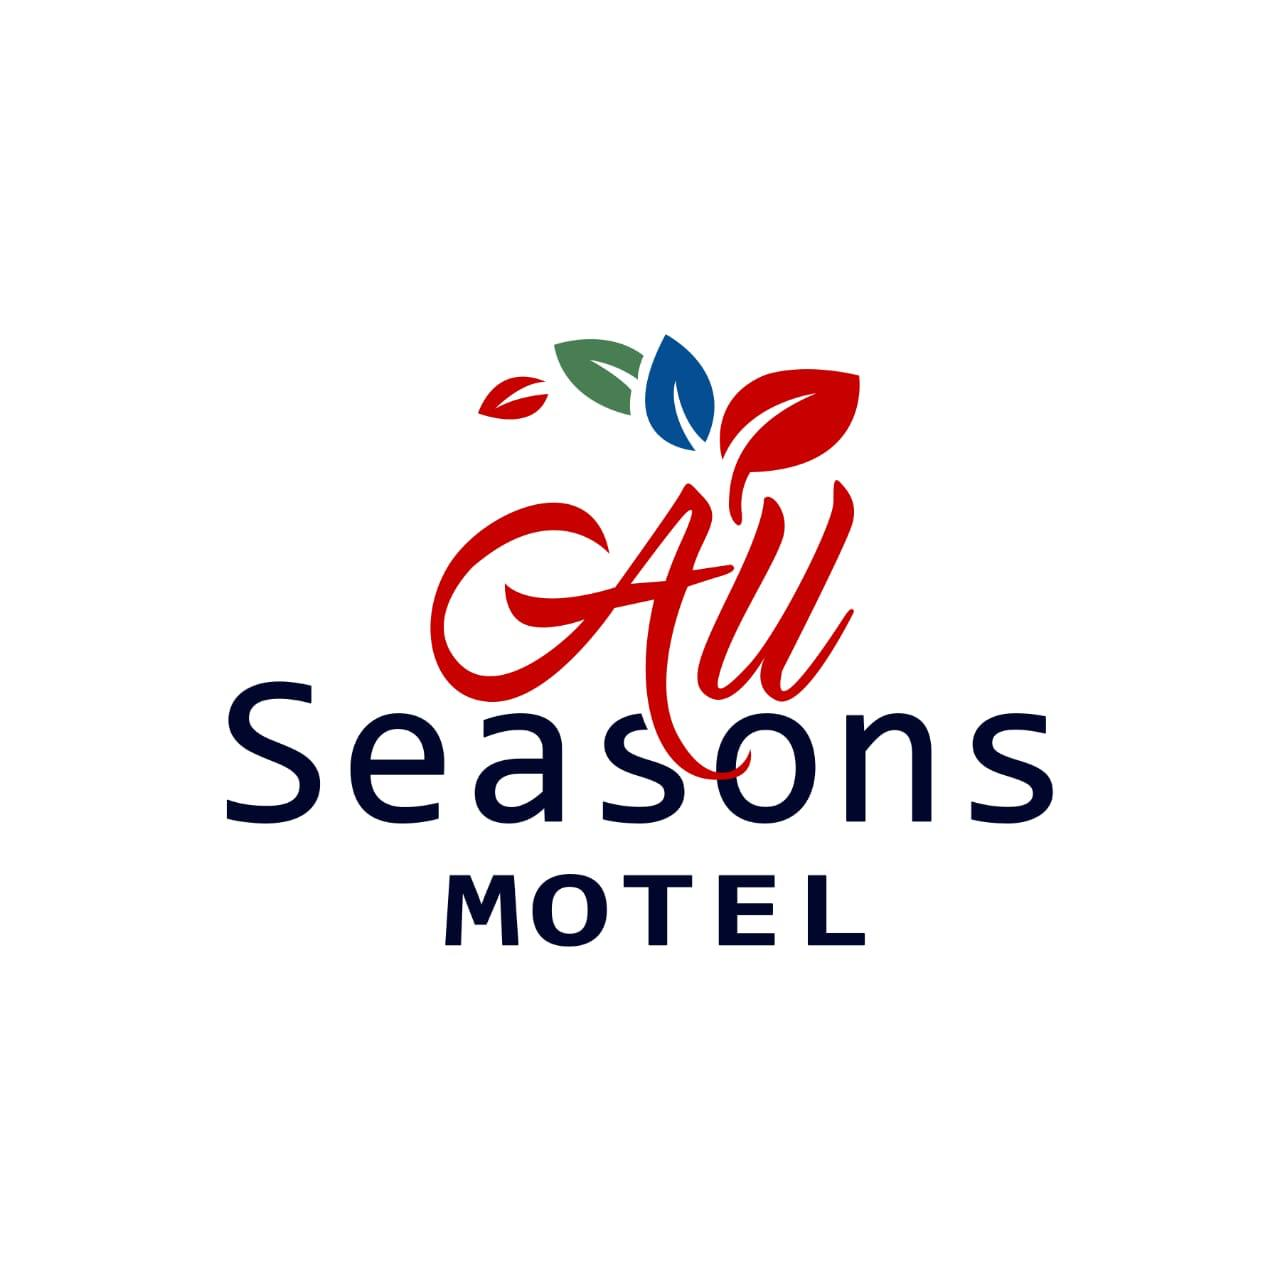 All Season Motel